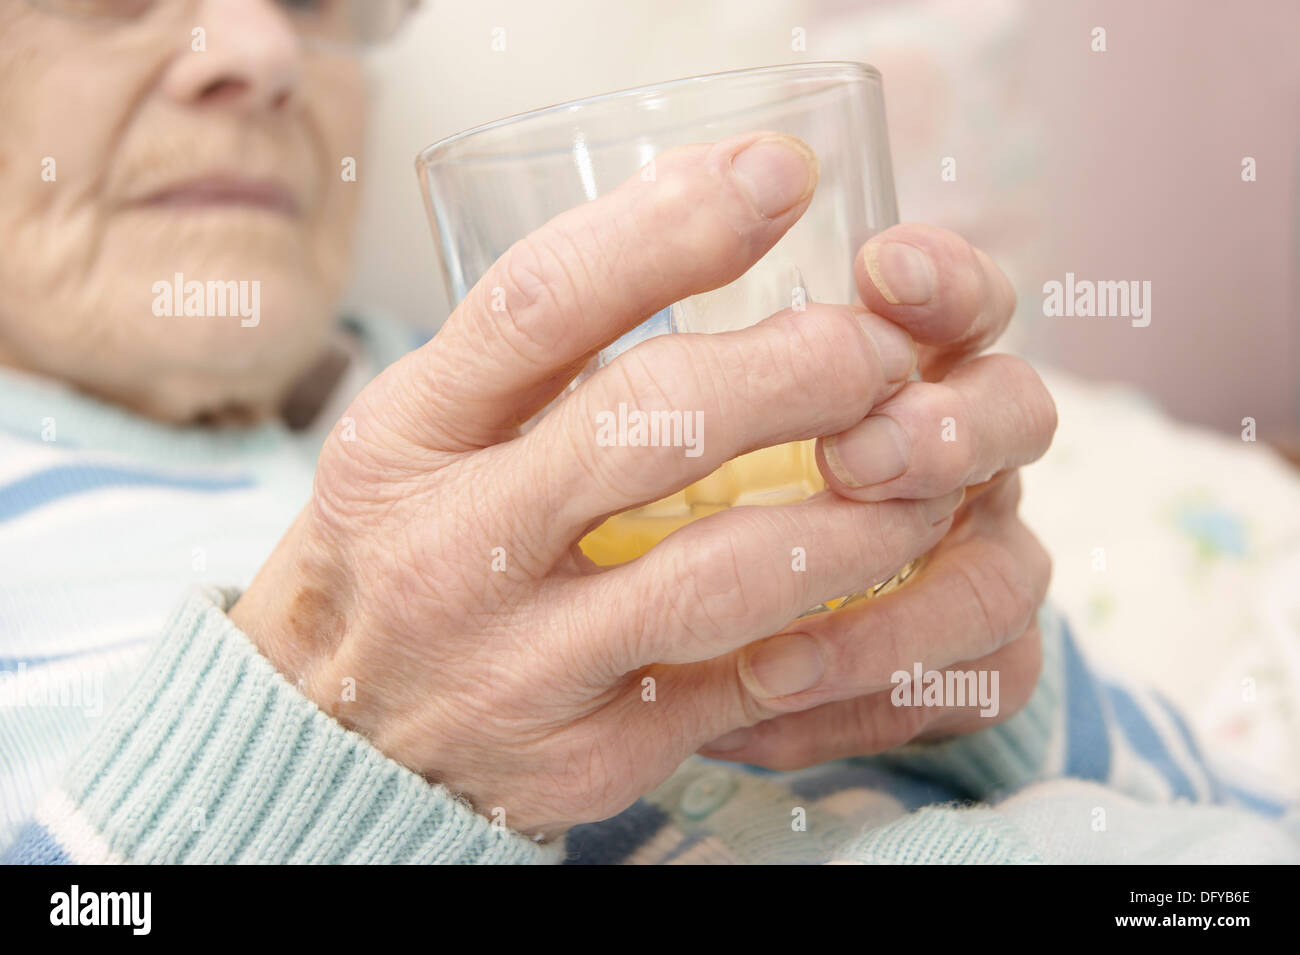 Elderly woman patient holding a glass with a drink of orange juice - Stock Image